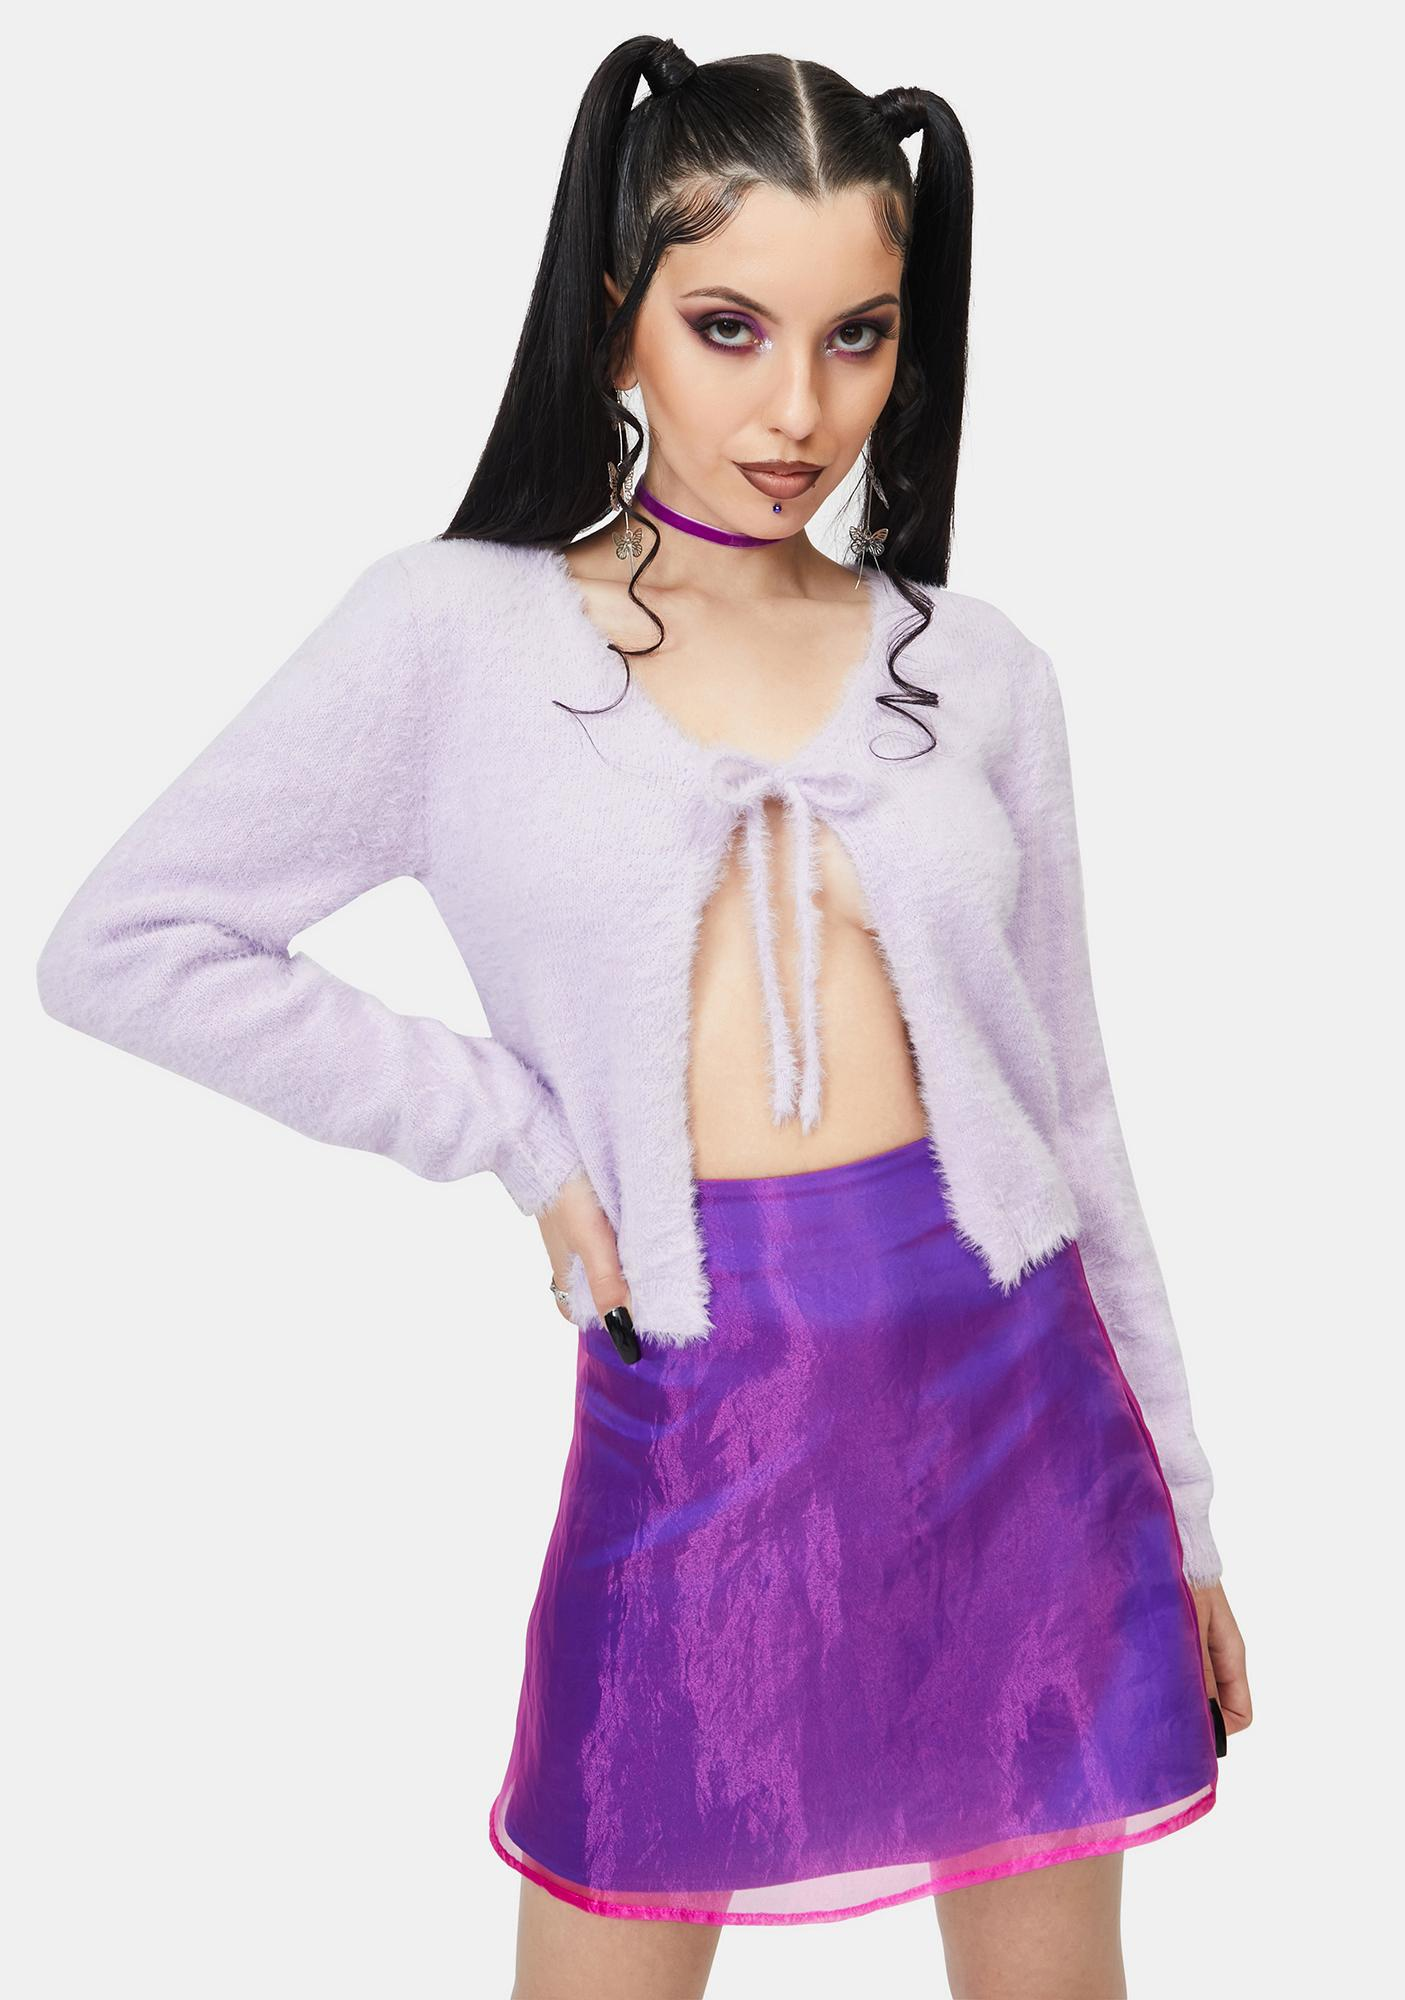 ZEMETA Lilac Dream Cardigan